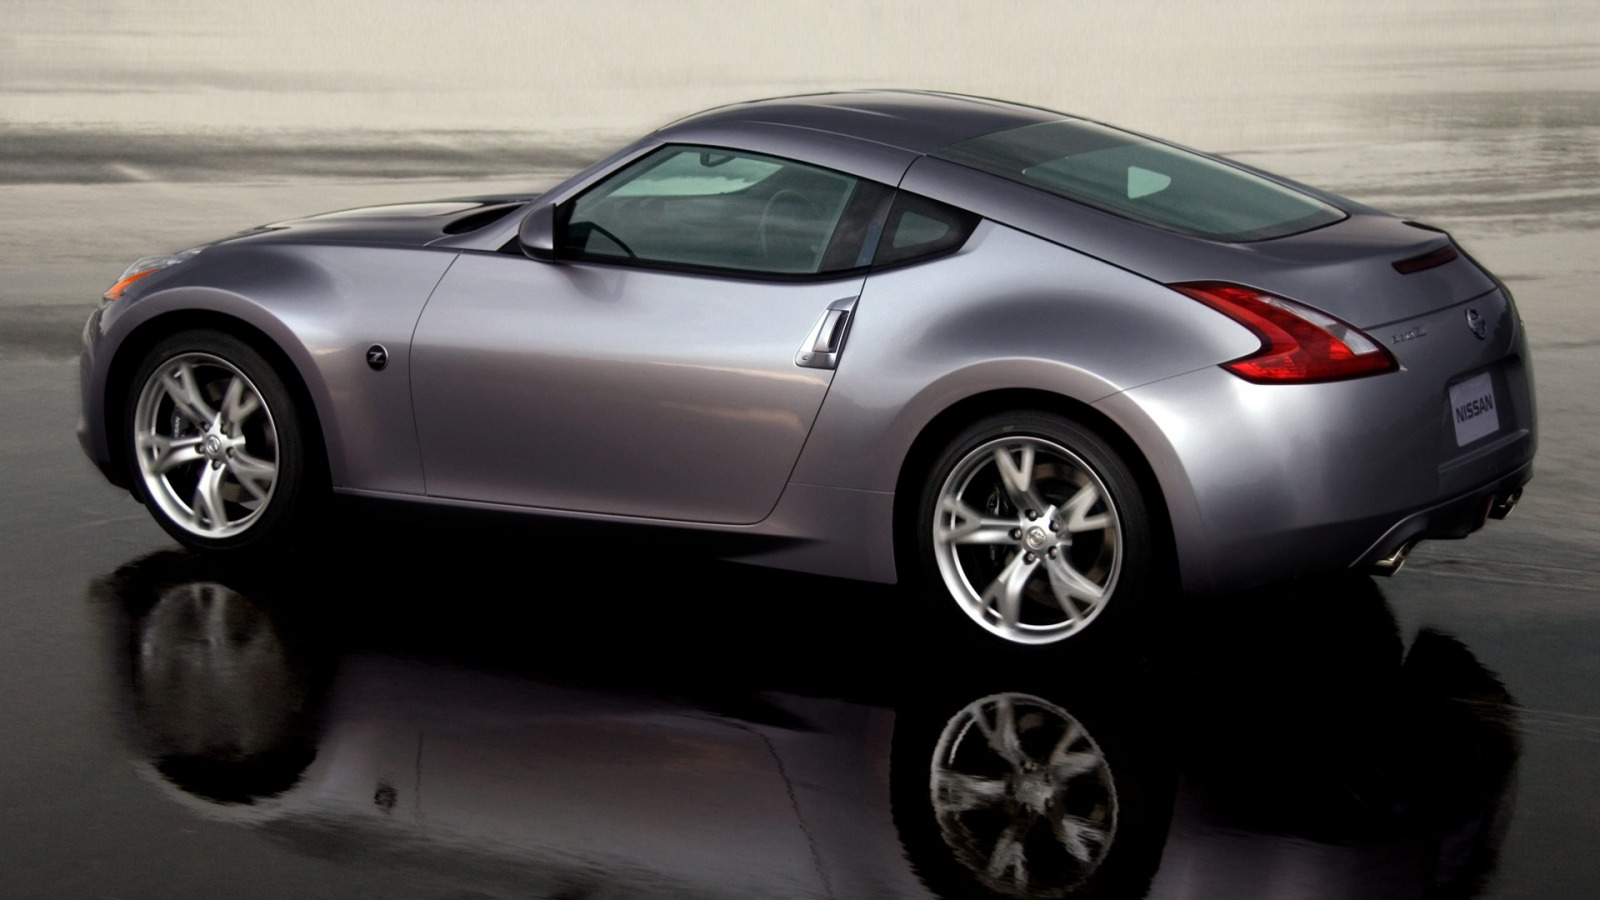 2017 Nissan 370Z Coupe Sports Car | Nissan USA